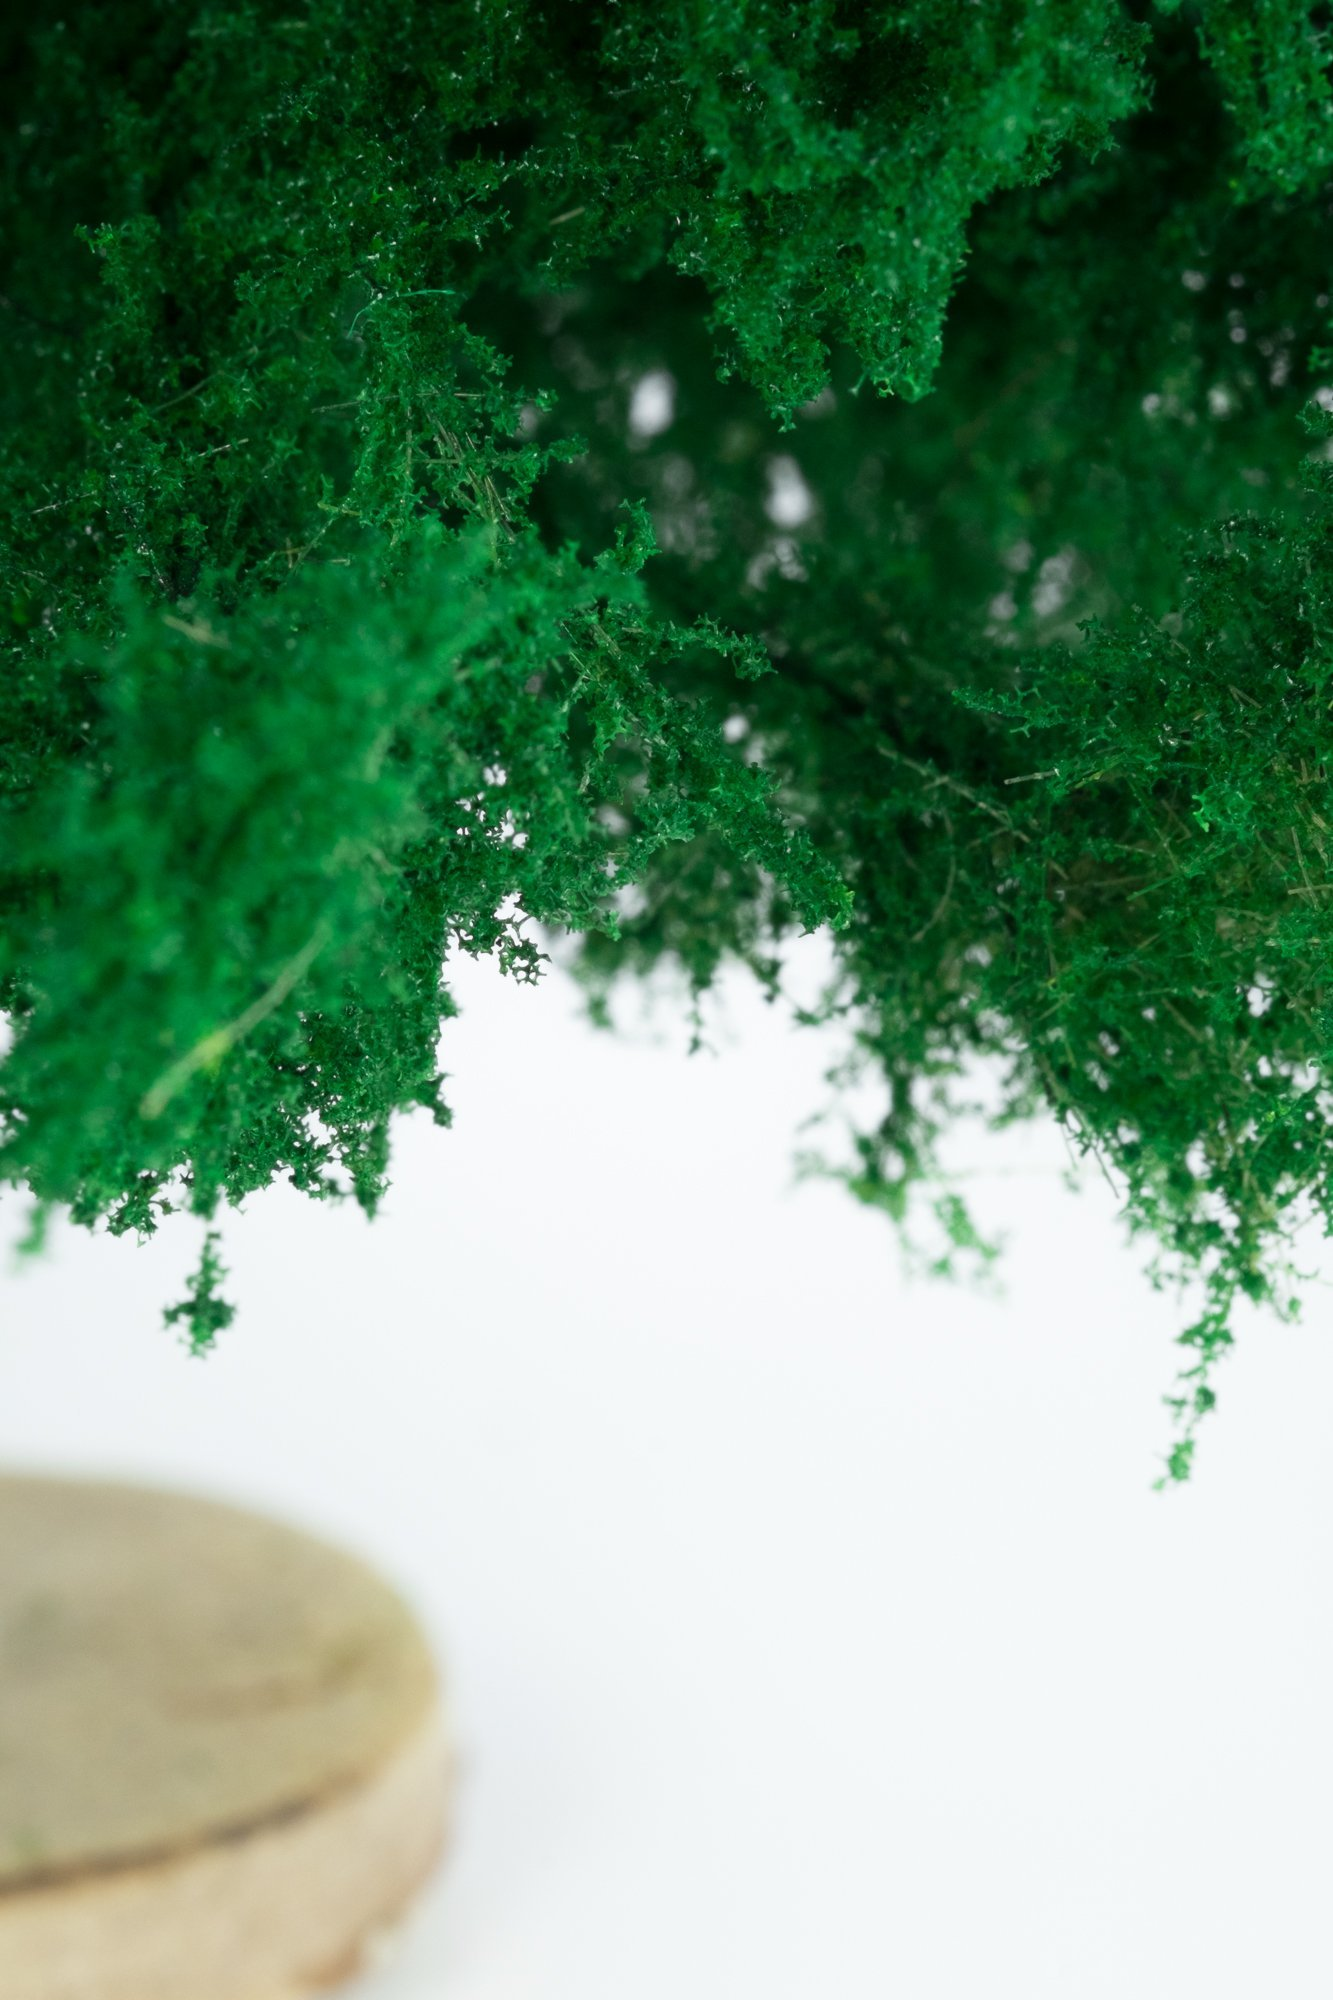 Closeup of foliage on smallest spruce tree model. Made from high quality model supplies by Primo Models.